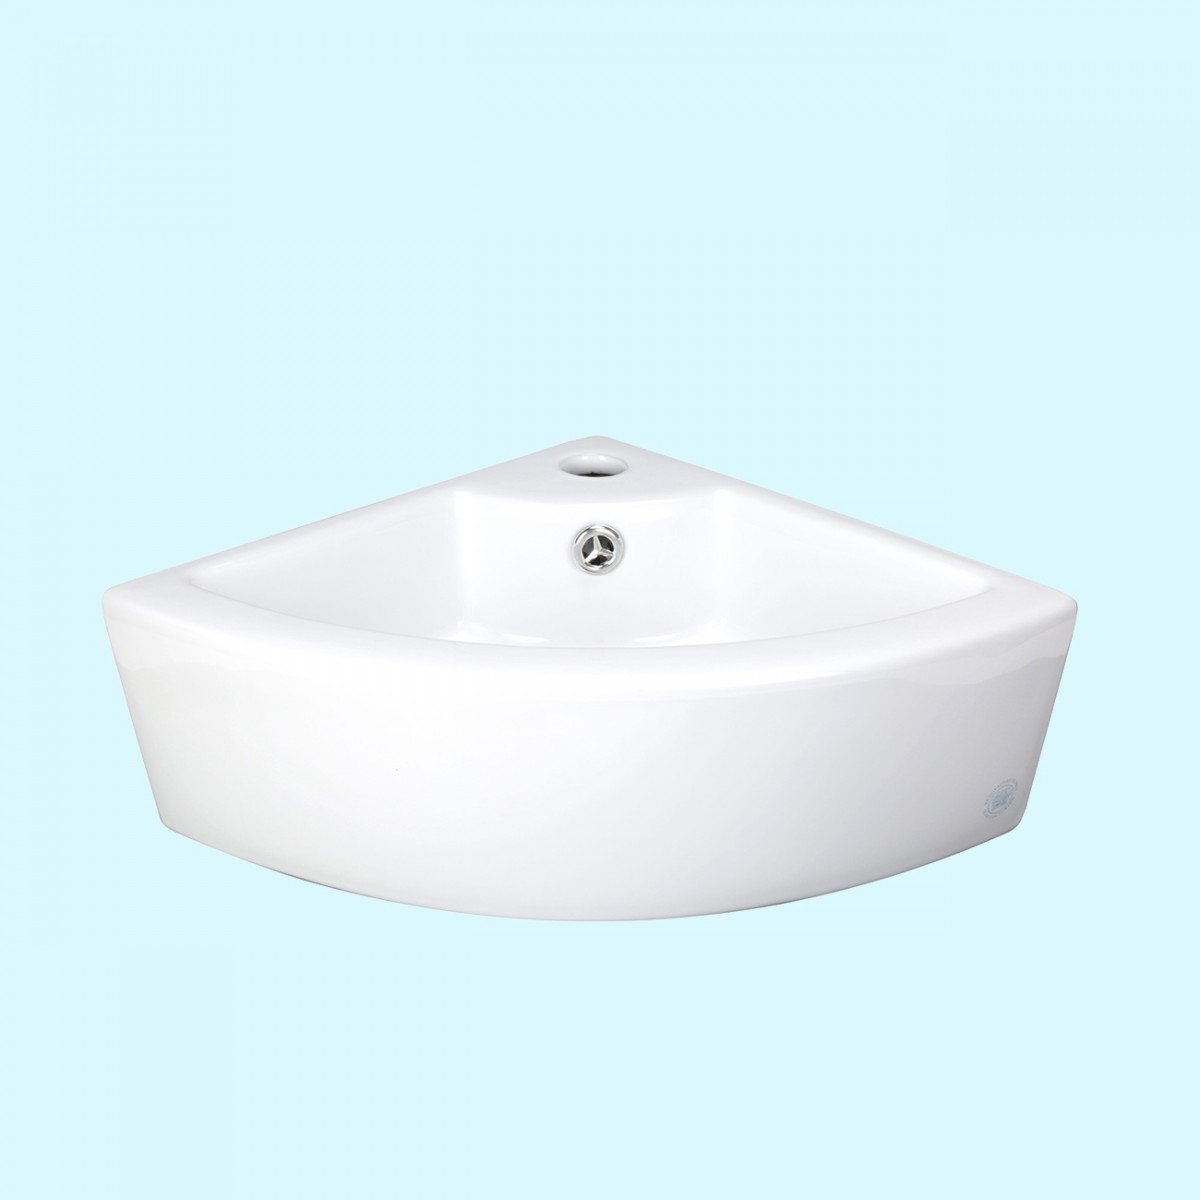 Bathroom triangle small white corner vessel sink above counter stain resist for Compact sinks for small bathrooms